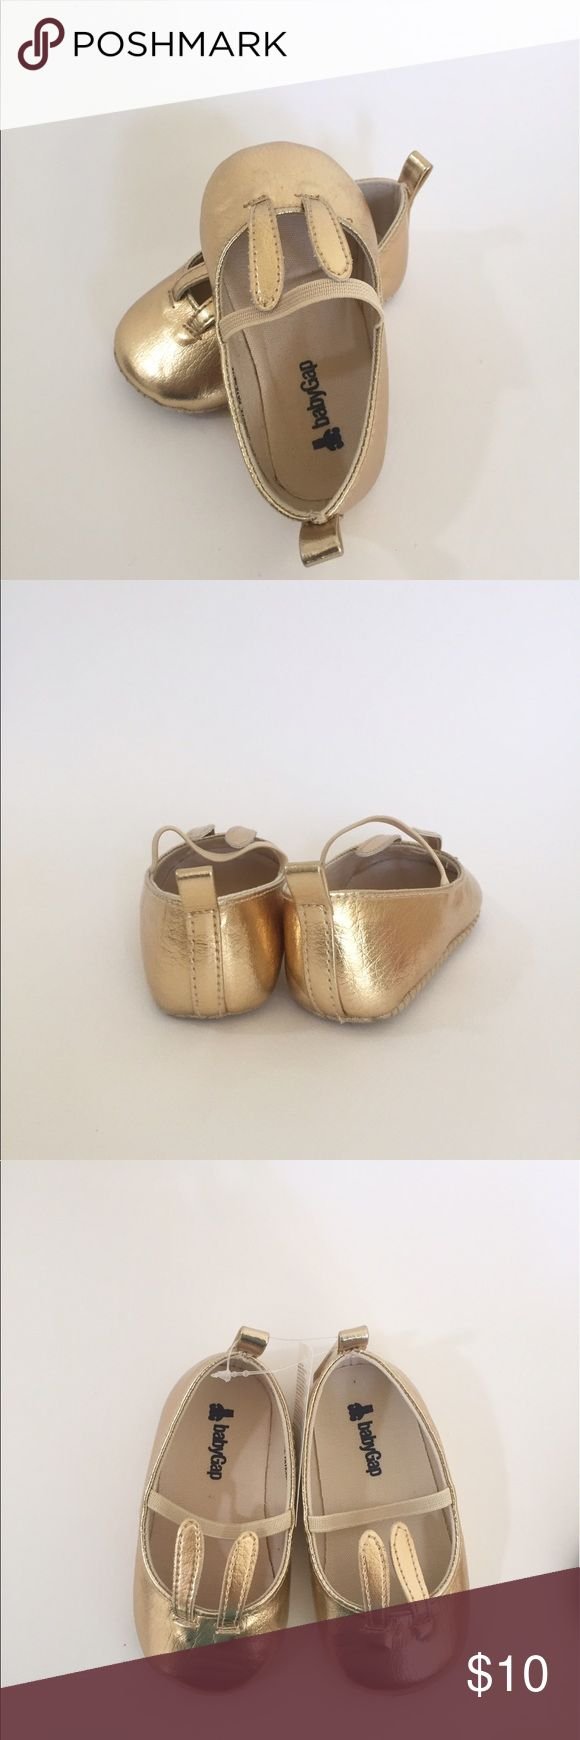 GAP Baby Girl Gold Ballet Flats (12/18mo) Brand New without Tags / Gold Ballet Flats with Bunny ears GAP Shoes